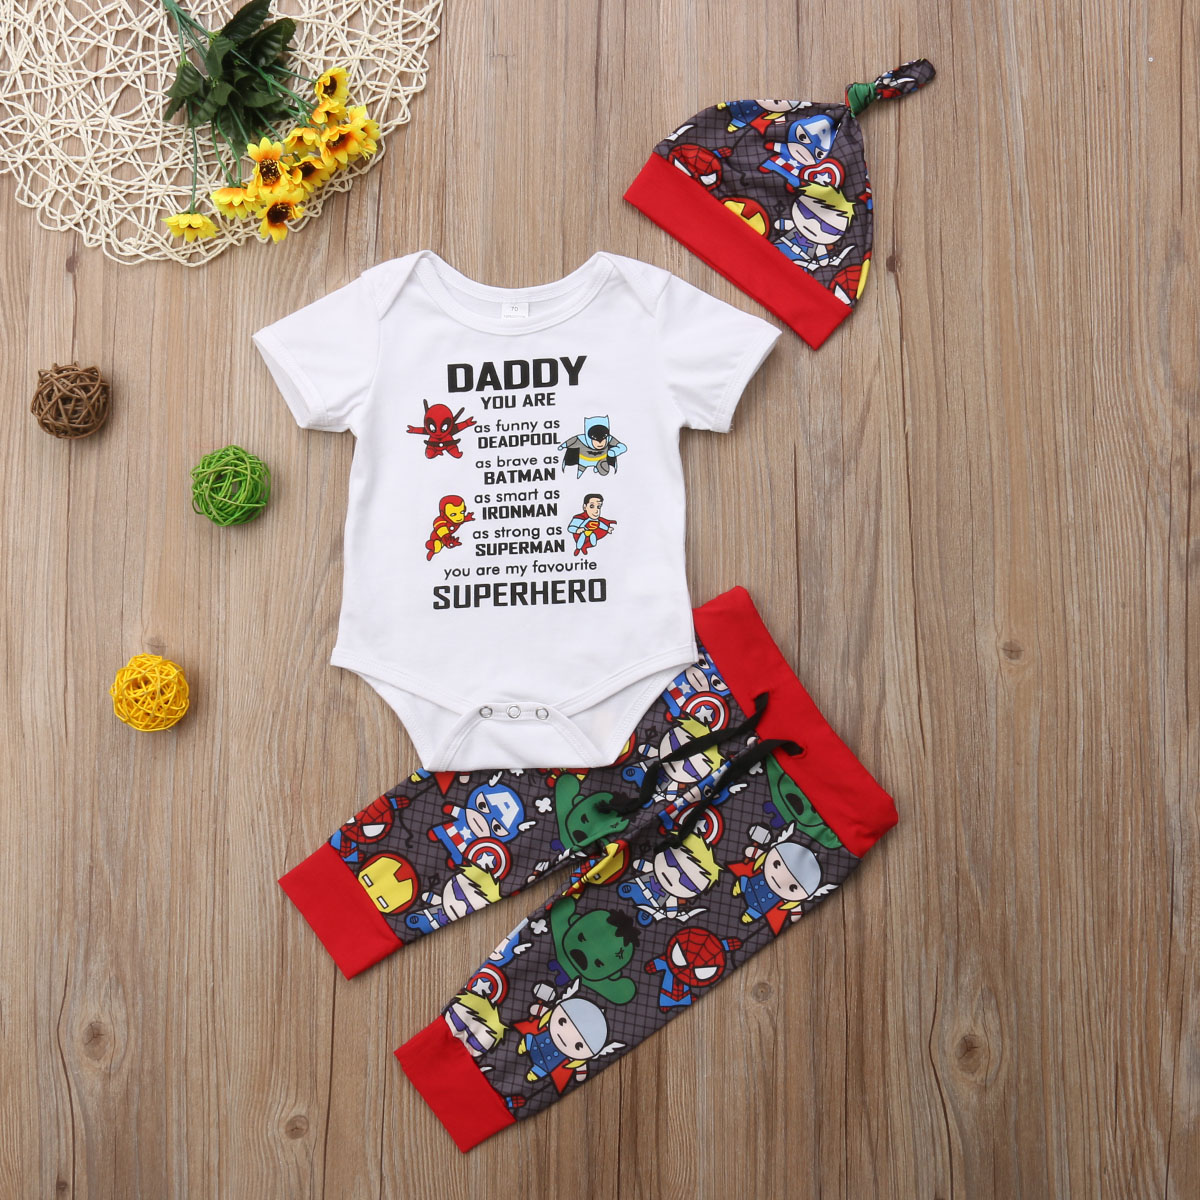 USA Newborn Baby Boys Girls Avengers Superhero Bodysuit Sets Pants Outfits Set Clothes